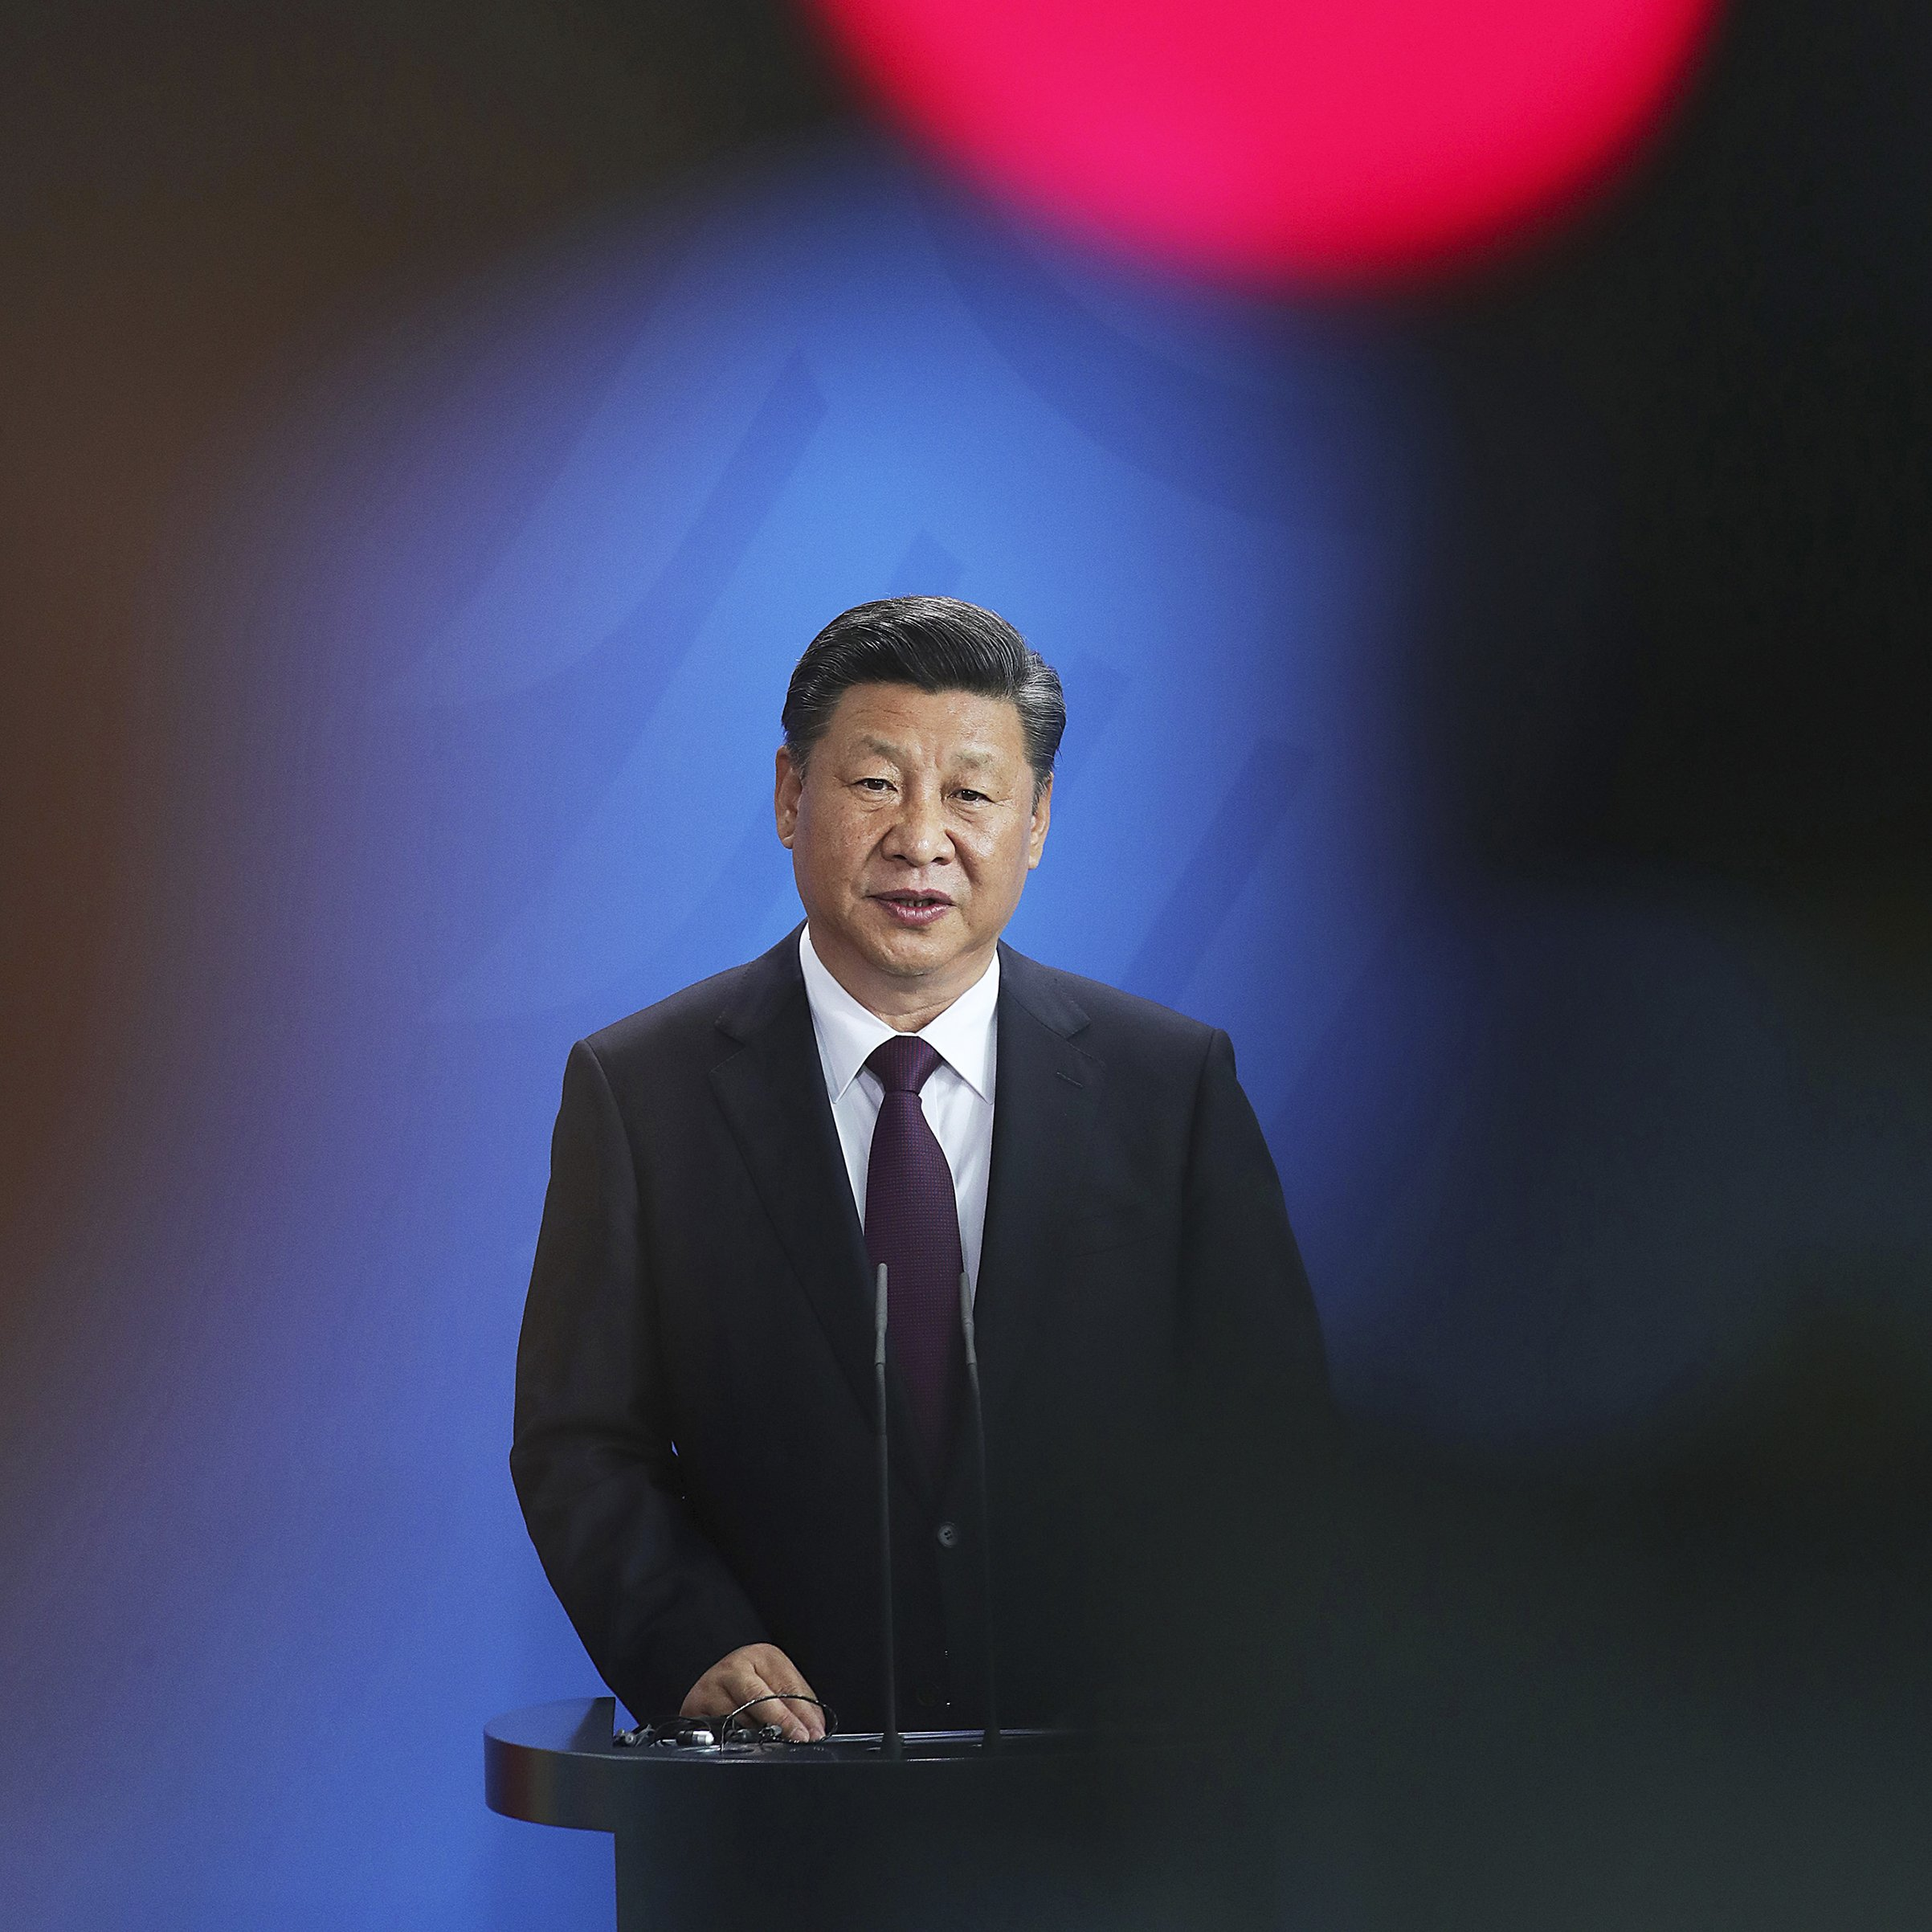 xi jinping person of year 2017 time magazine square